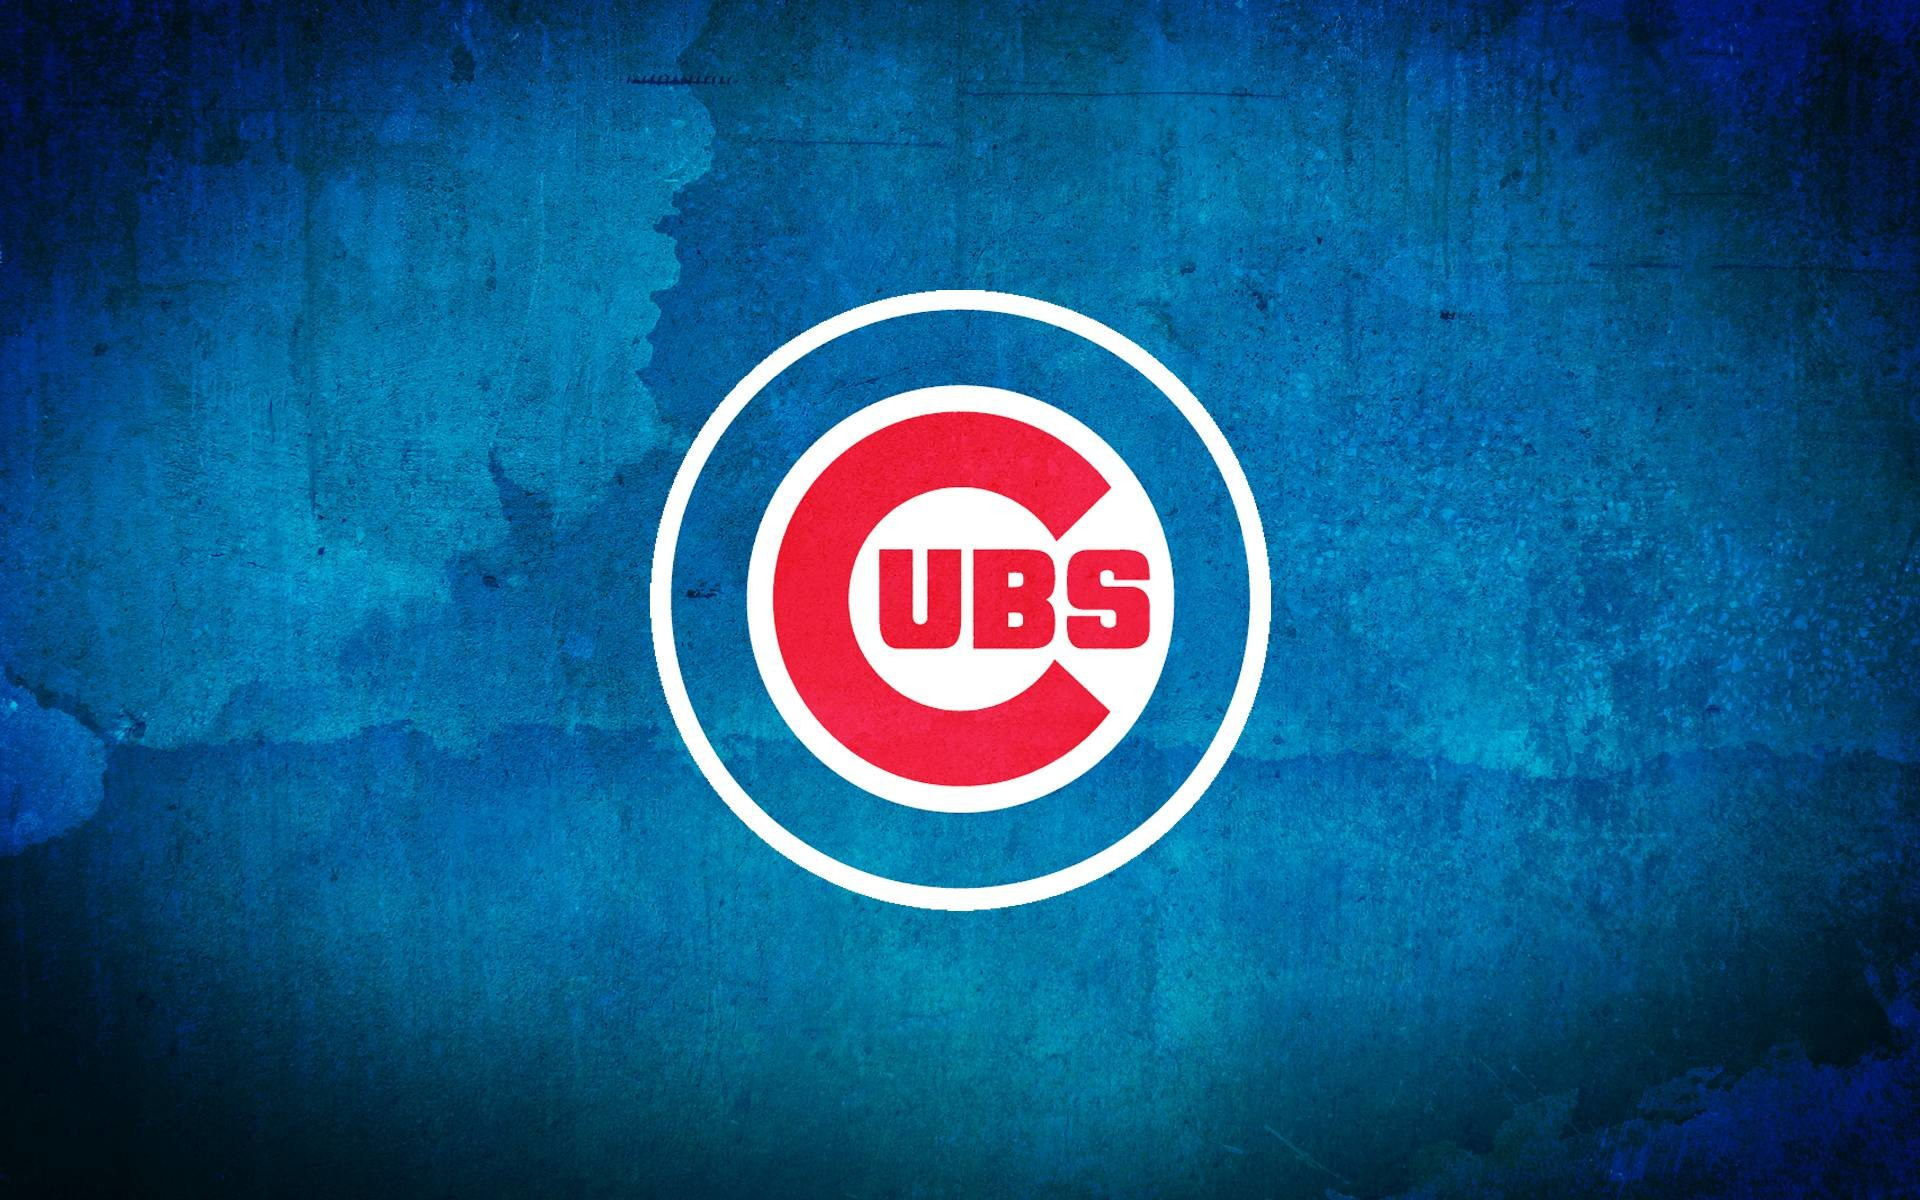 chicago cubs wallpaper for android (72+ images)